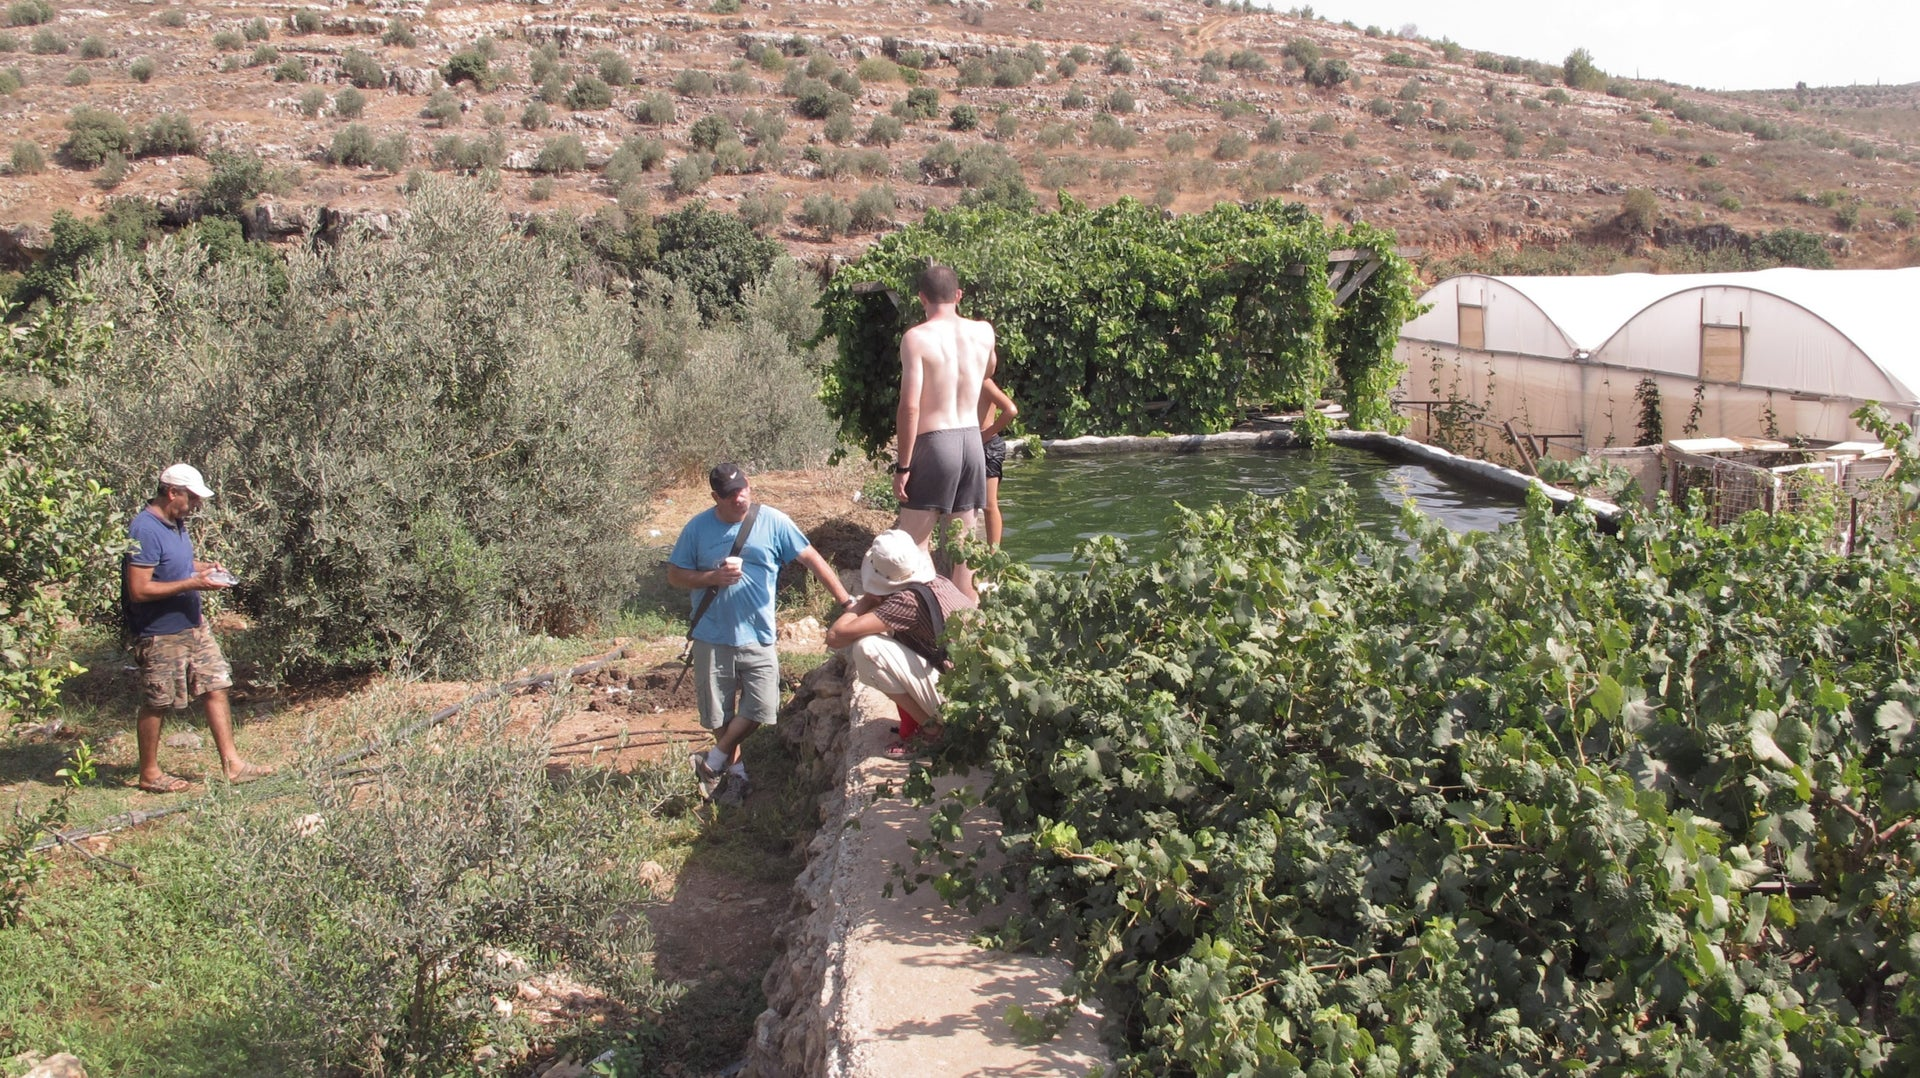 Armed hikers at the Palestinian village of Wadi Fukin, in the West Bank.